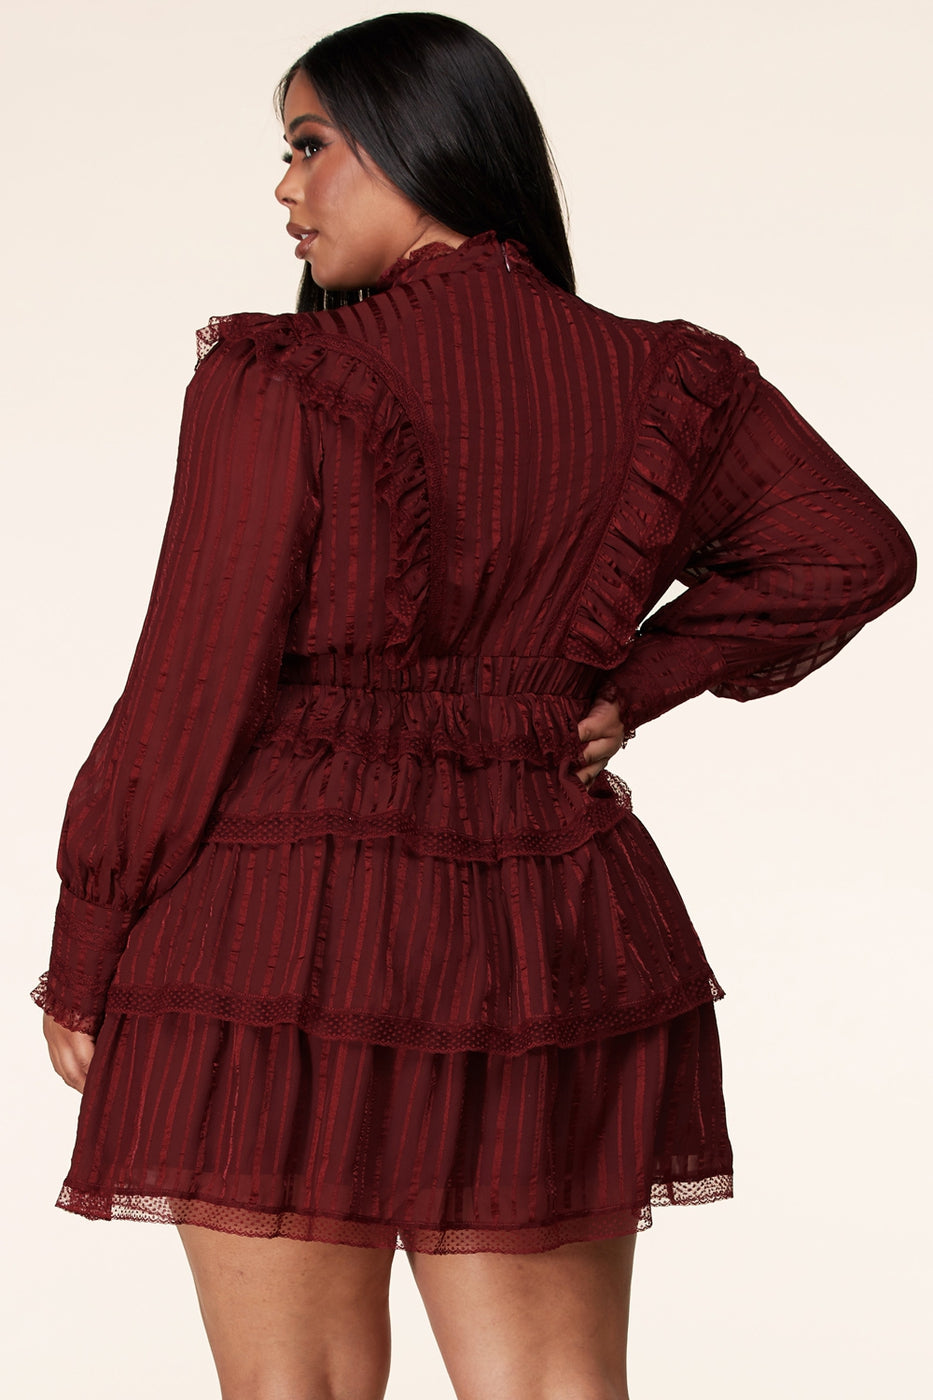 plus size Vintage stle lace dress